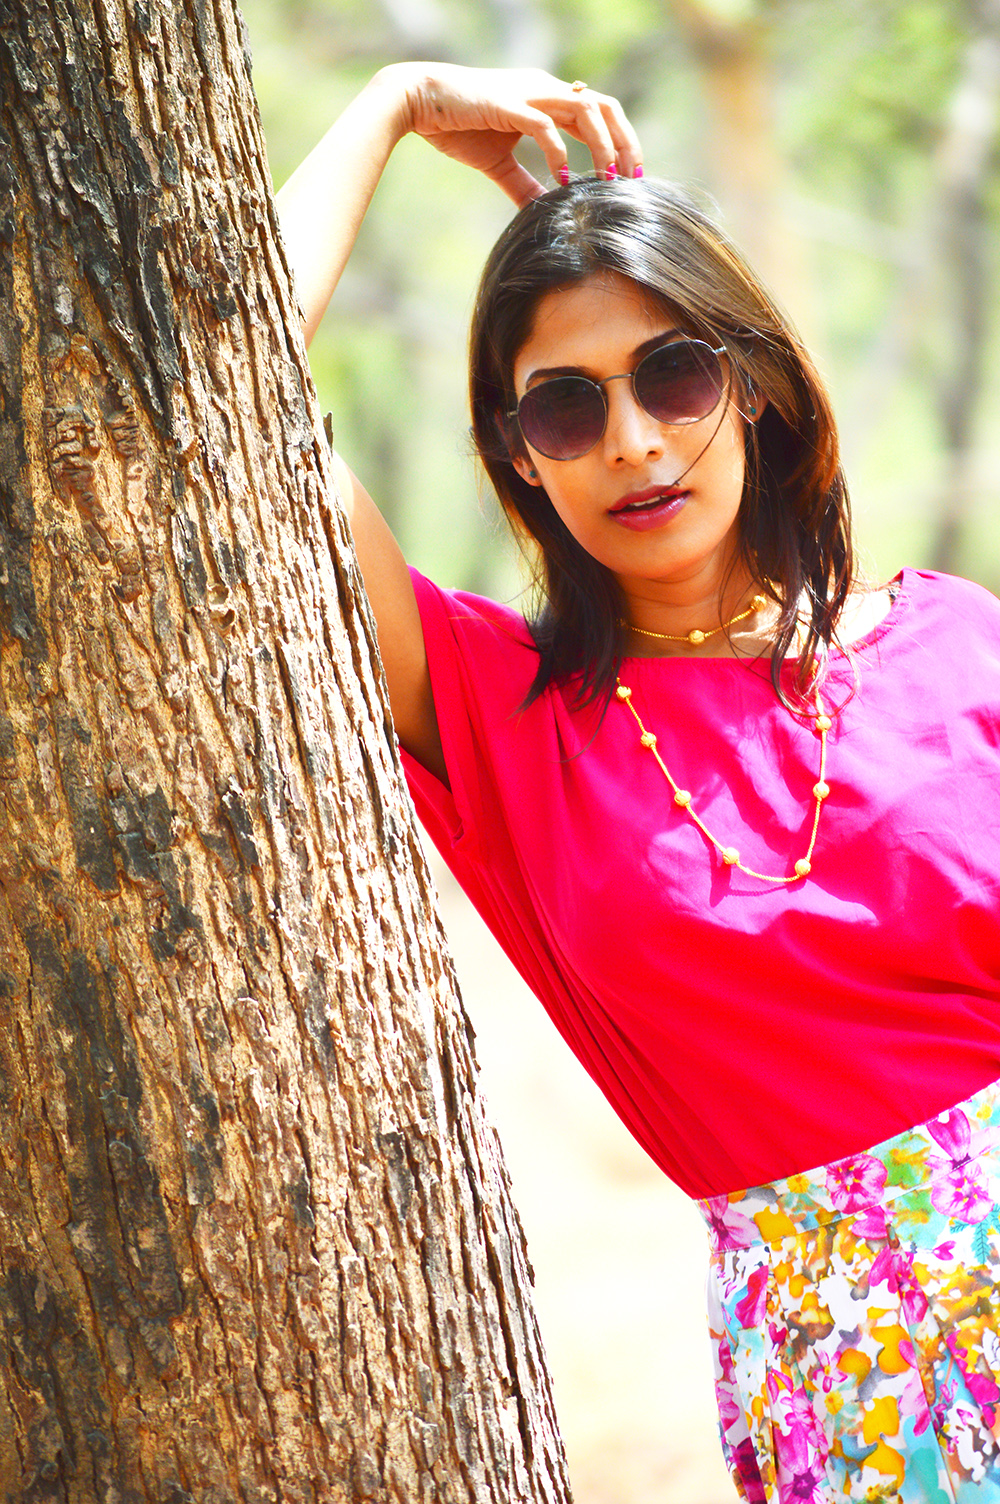 Fashion, Style, Photography, Fashion Blogger, Indian Fashion Blogger, Summer Fashion, Printed Skirt, Fashion Photography, Street Style, Personal Style-3